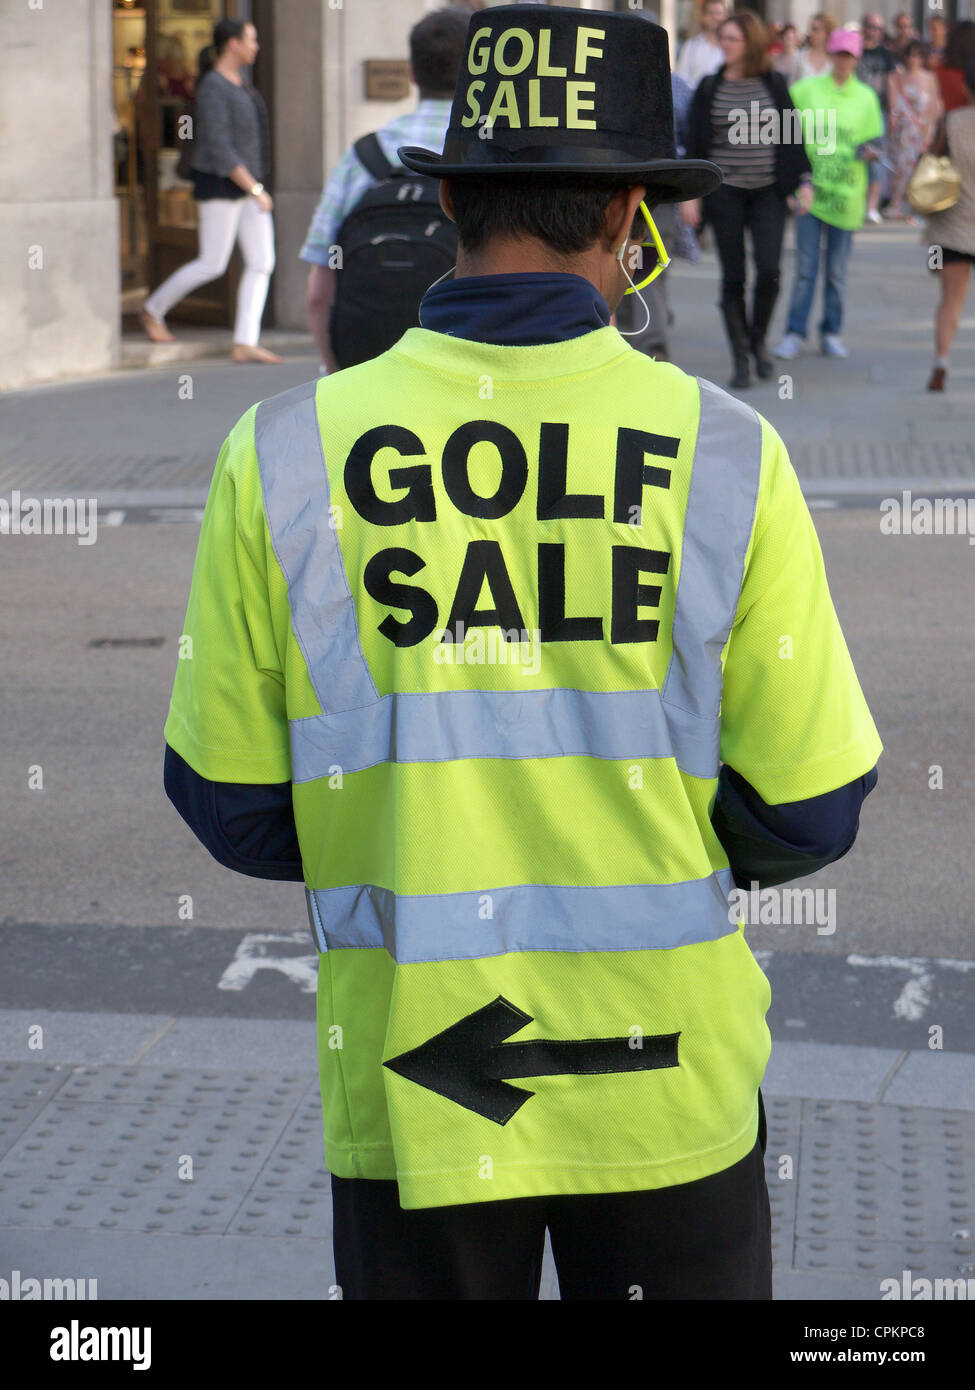 A person standing wearing adverts for a golf sale - Stock Image